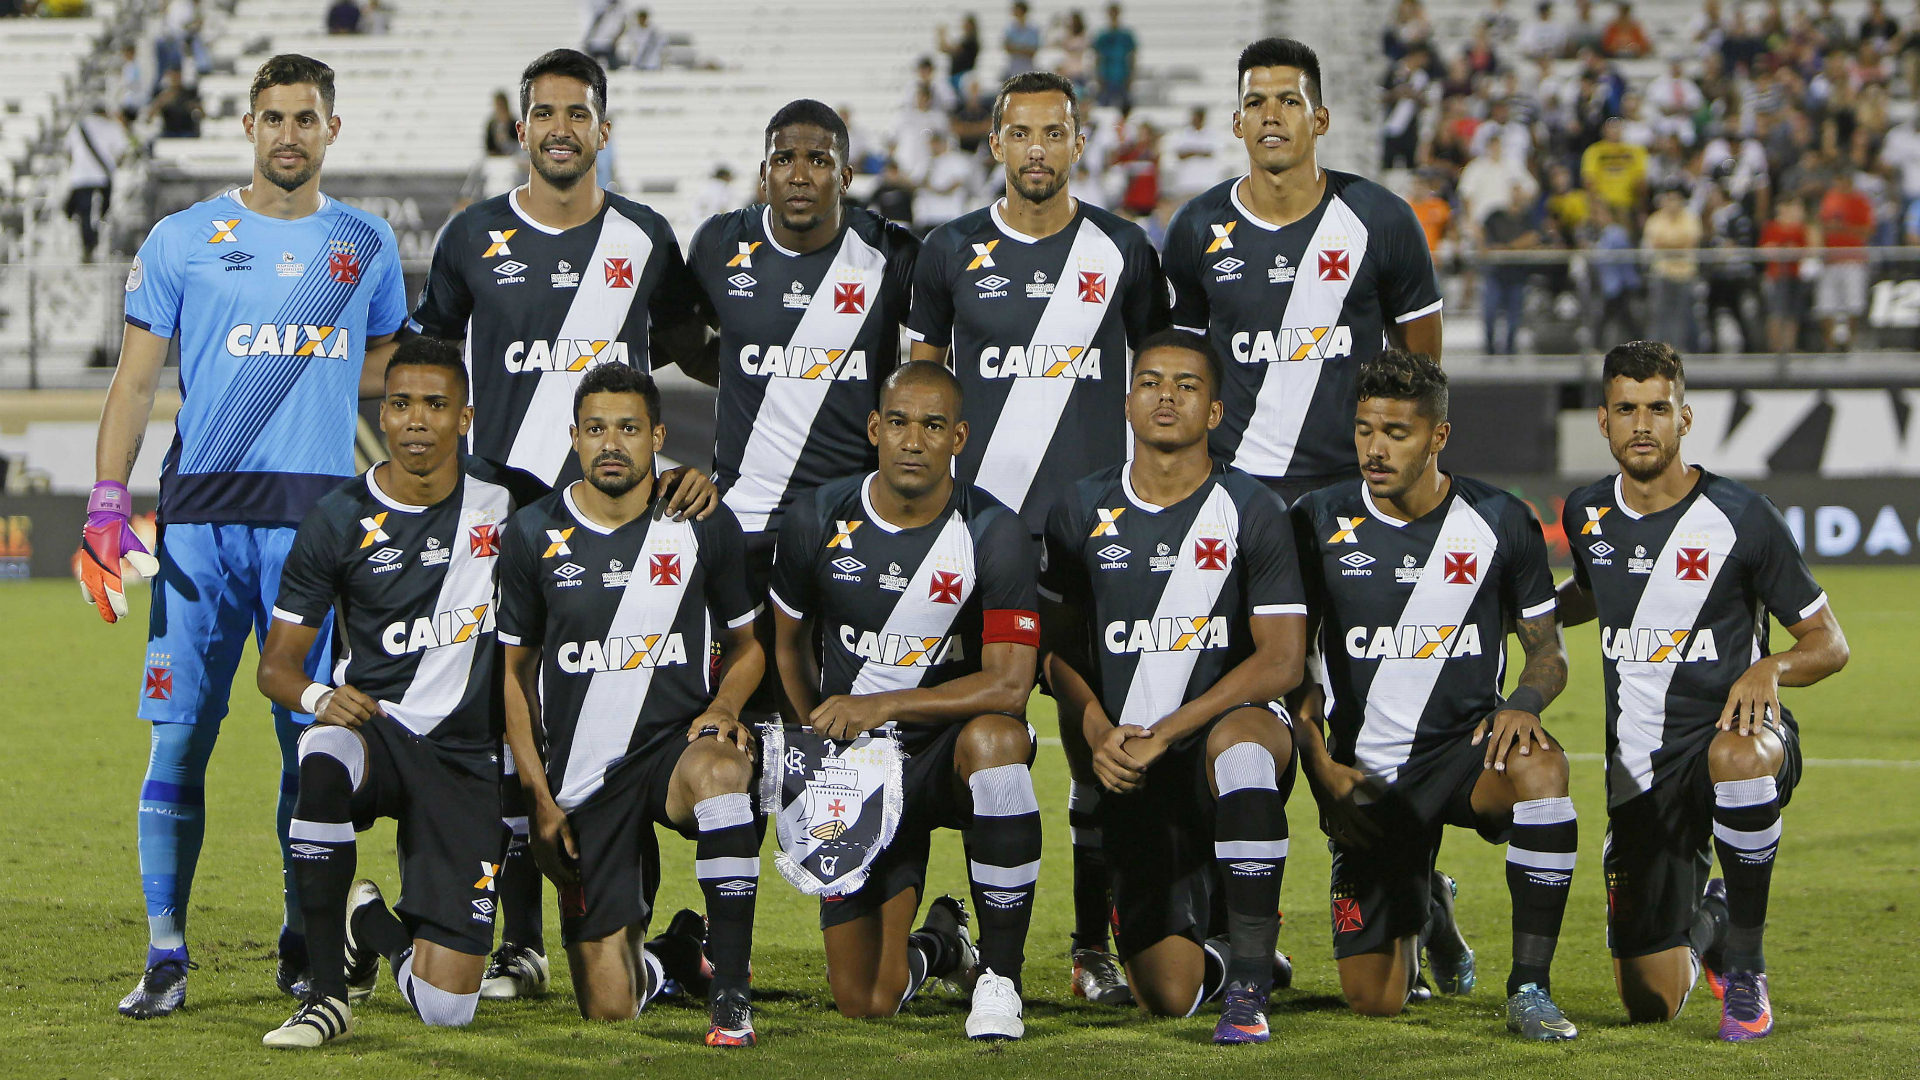 Florida Cup Vasco and River Plate meeting again  sc 1 st  Goal.com & Florida Cup: Vasco and River Plate meeting again - Goal.com